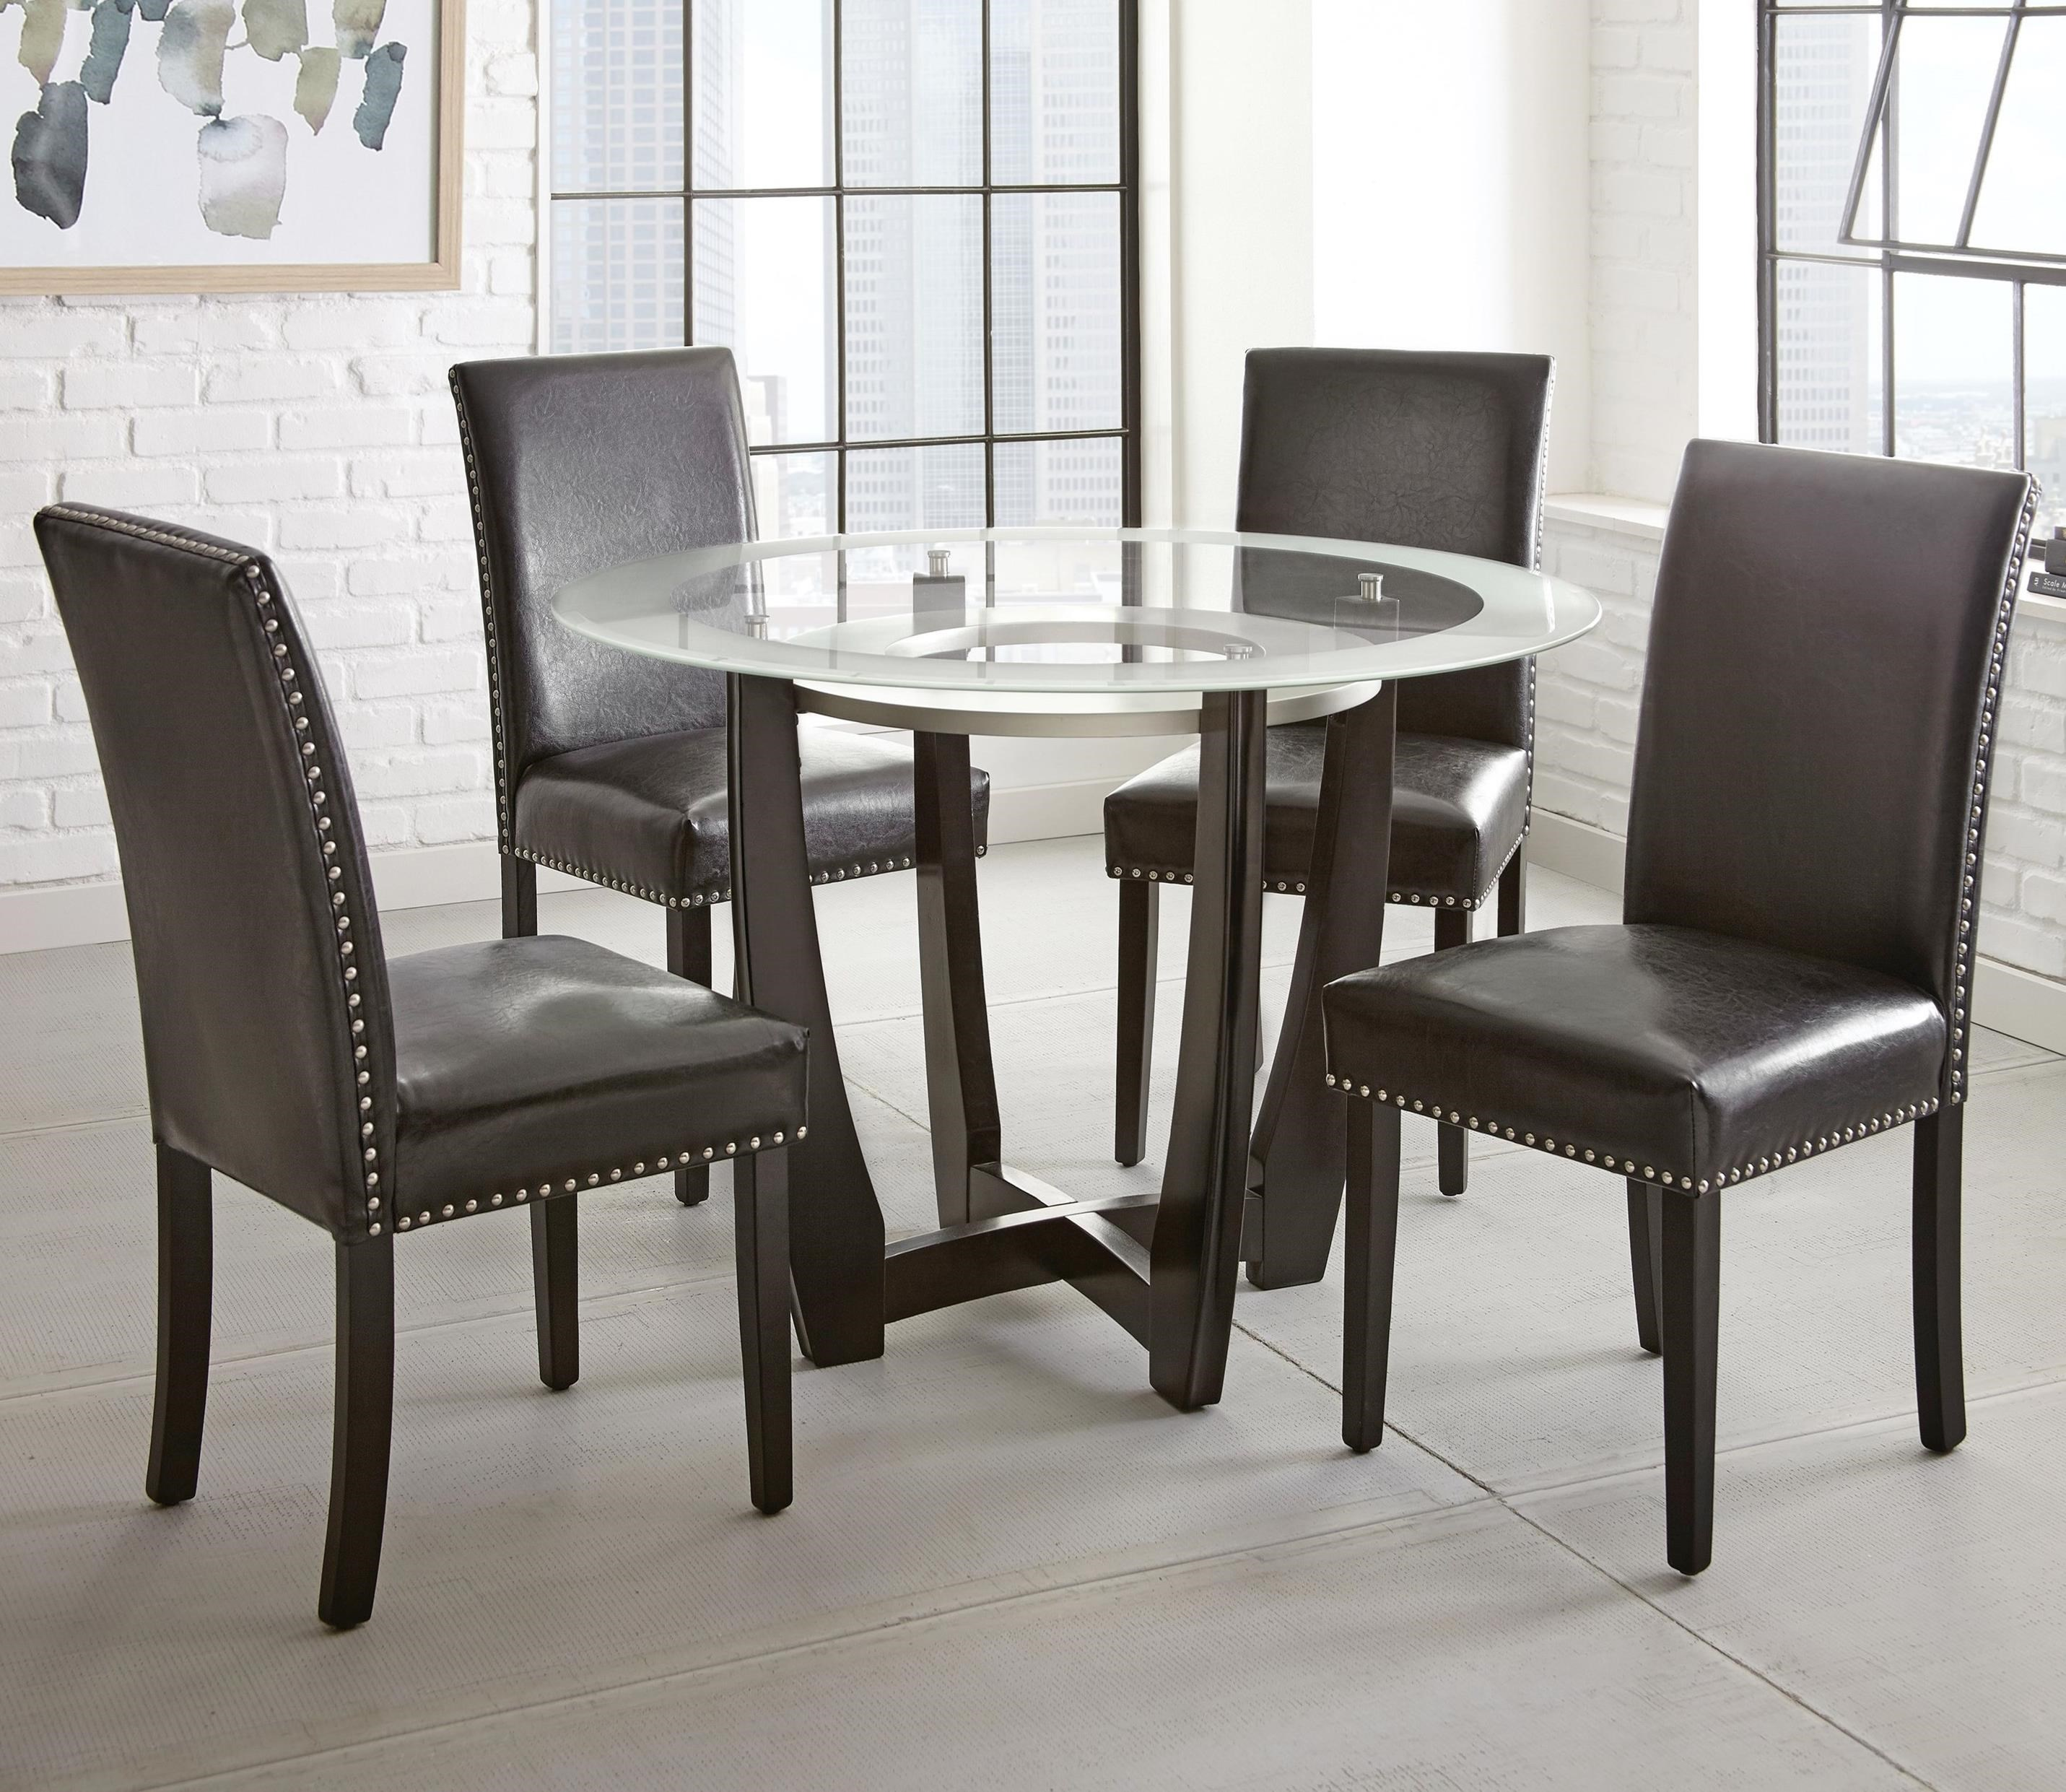 ... Dining Table Set. Steve Silver Verano5pc 45 ...